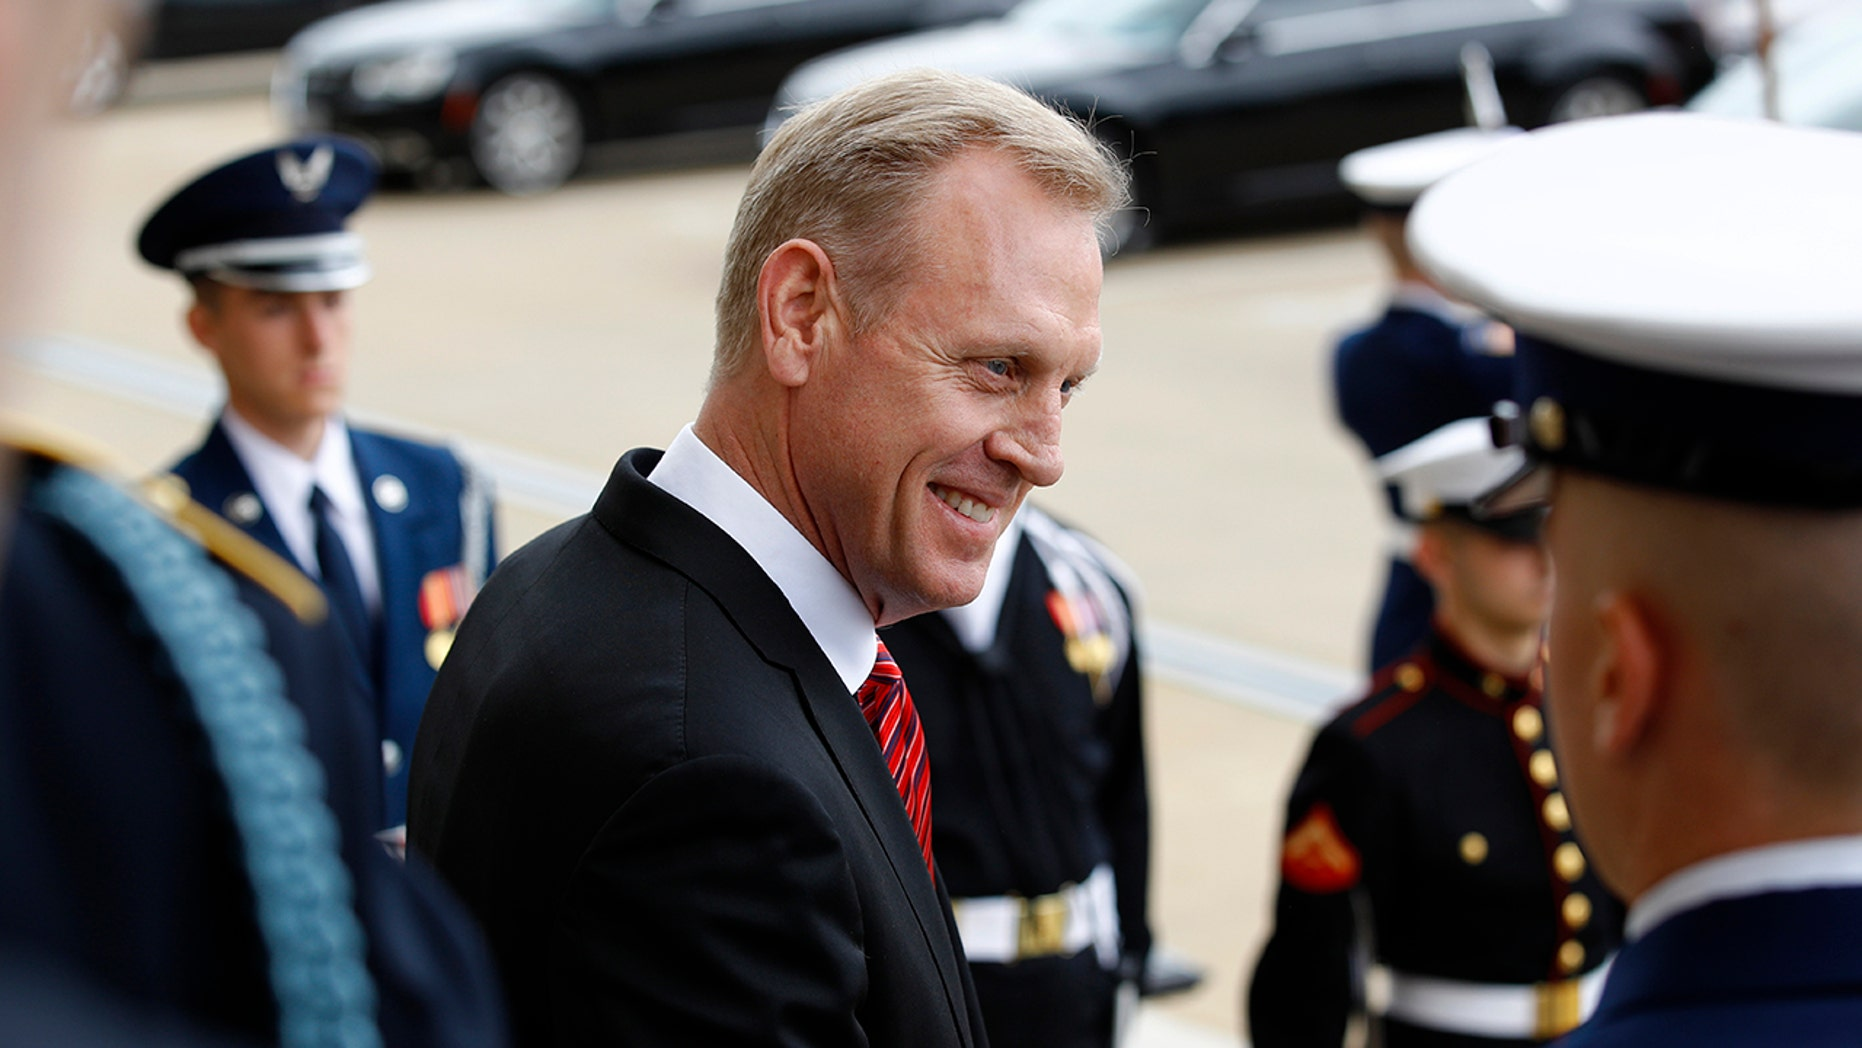 Westlake Legal Group shanahan Trump to nominate Shanahan as permanent defense secretary: sources Lucas Tomlinson fox-news/us/military fox-news/tech/topics/pentagon fox-news/politics/defense fox news fnc/us fnc article 7e504080-1fa5-59a6-9118-c1181cec0beb